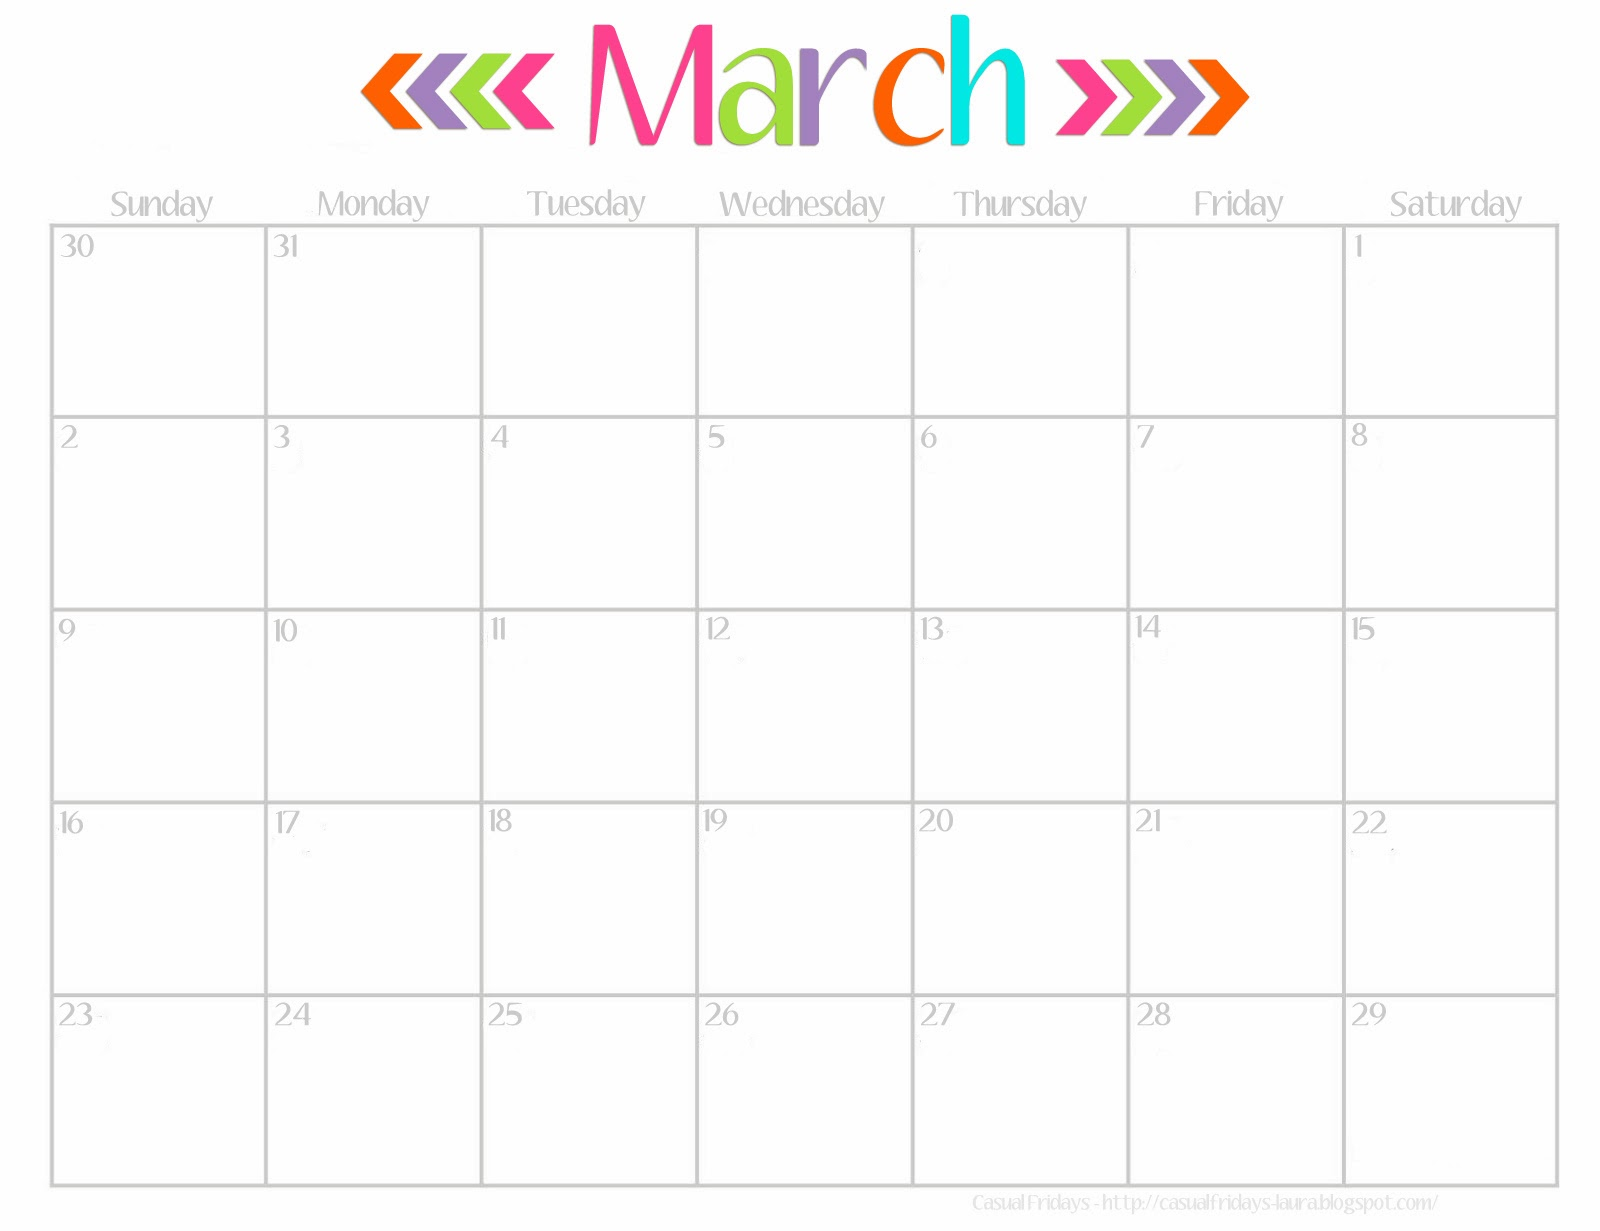 March 2015 Calendar Wallpaper Pictures and JPG GIF PNG Images Happy 1600x1231